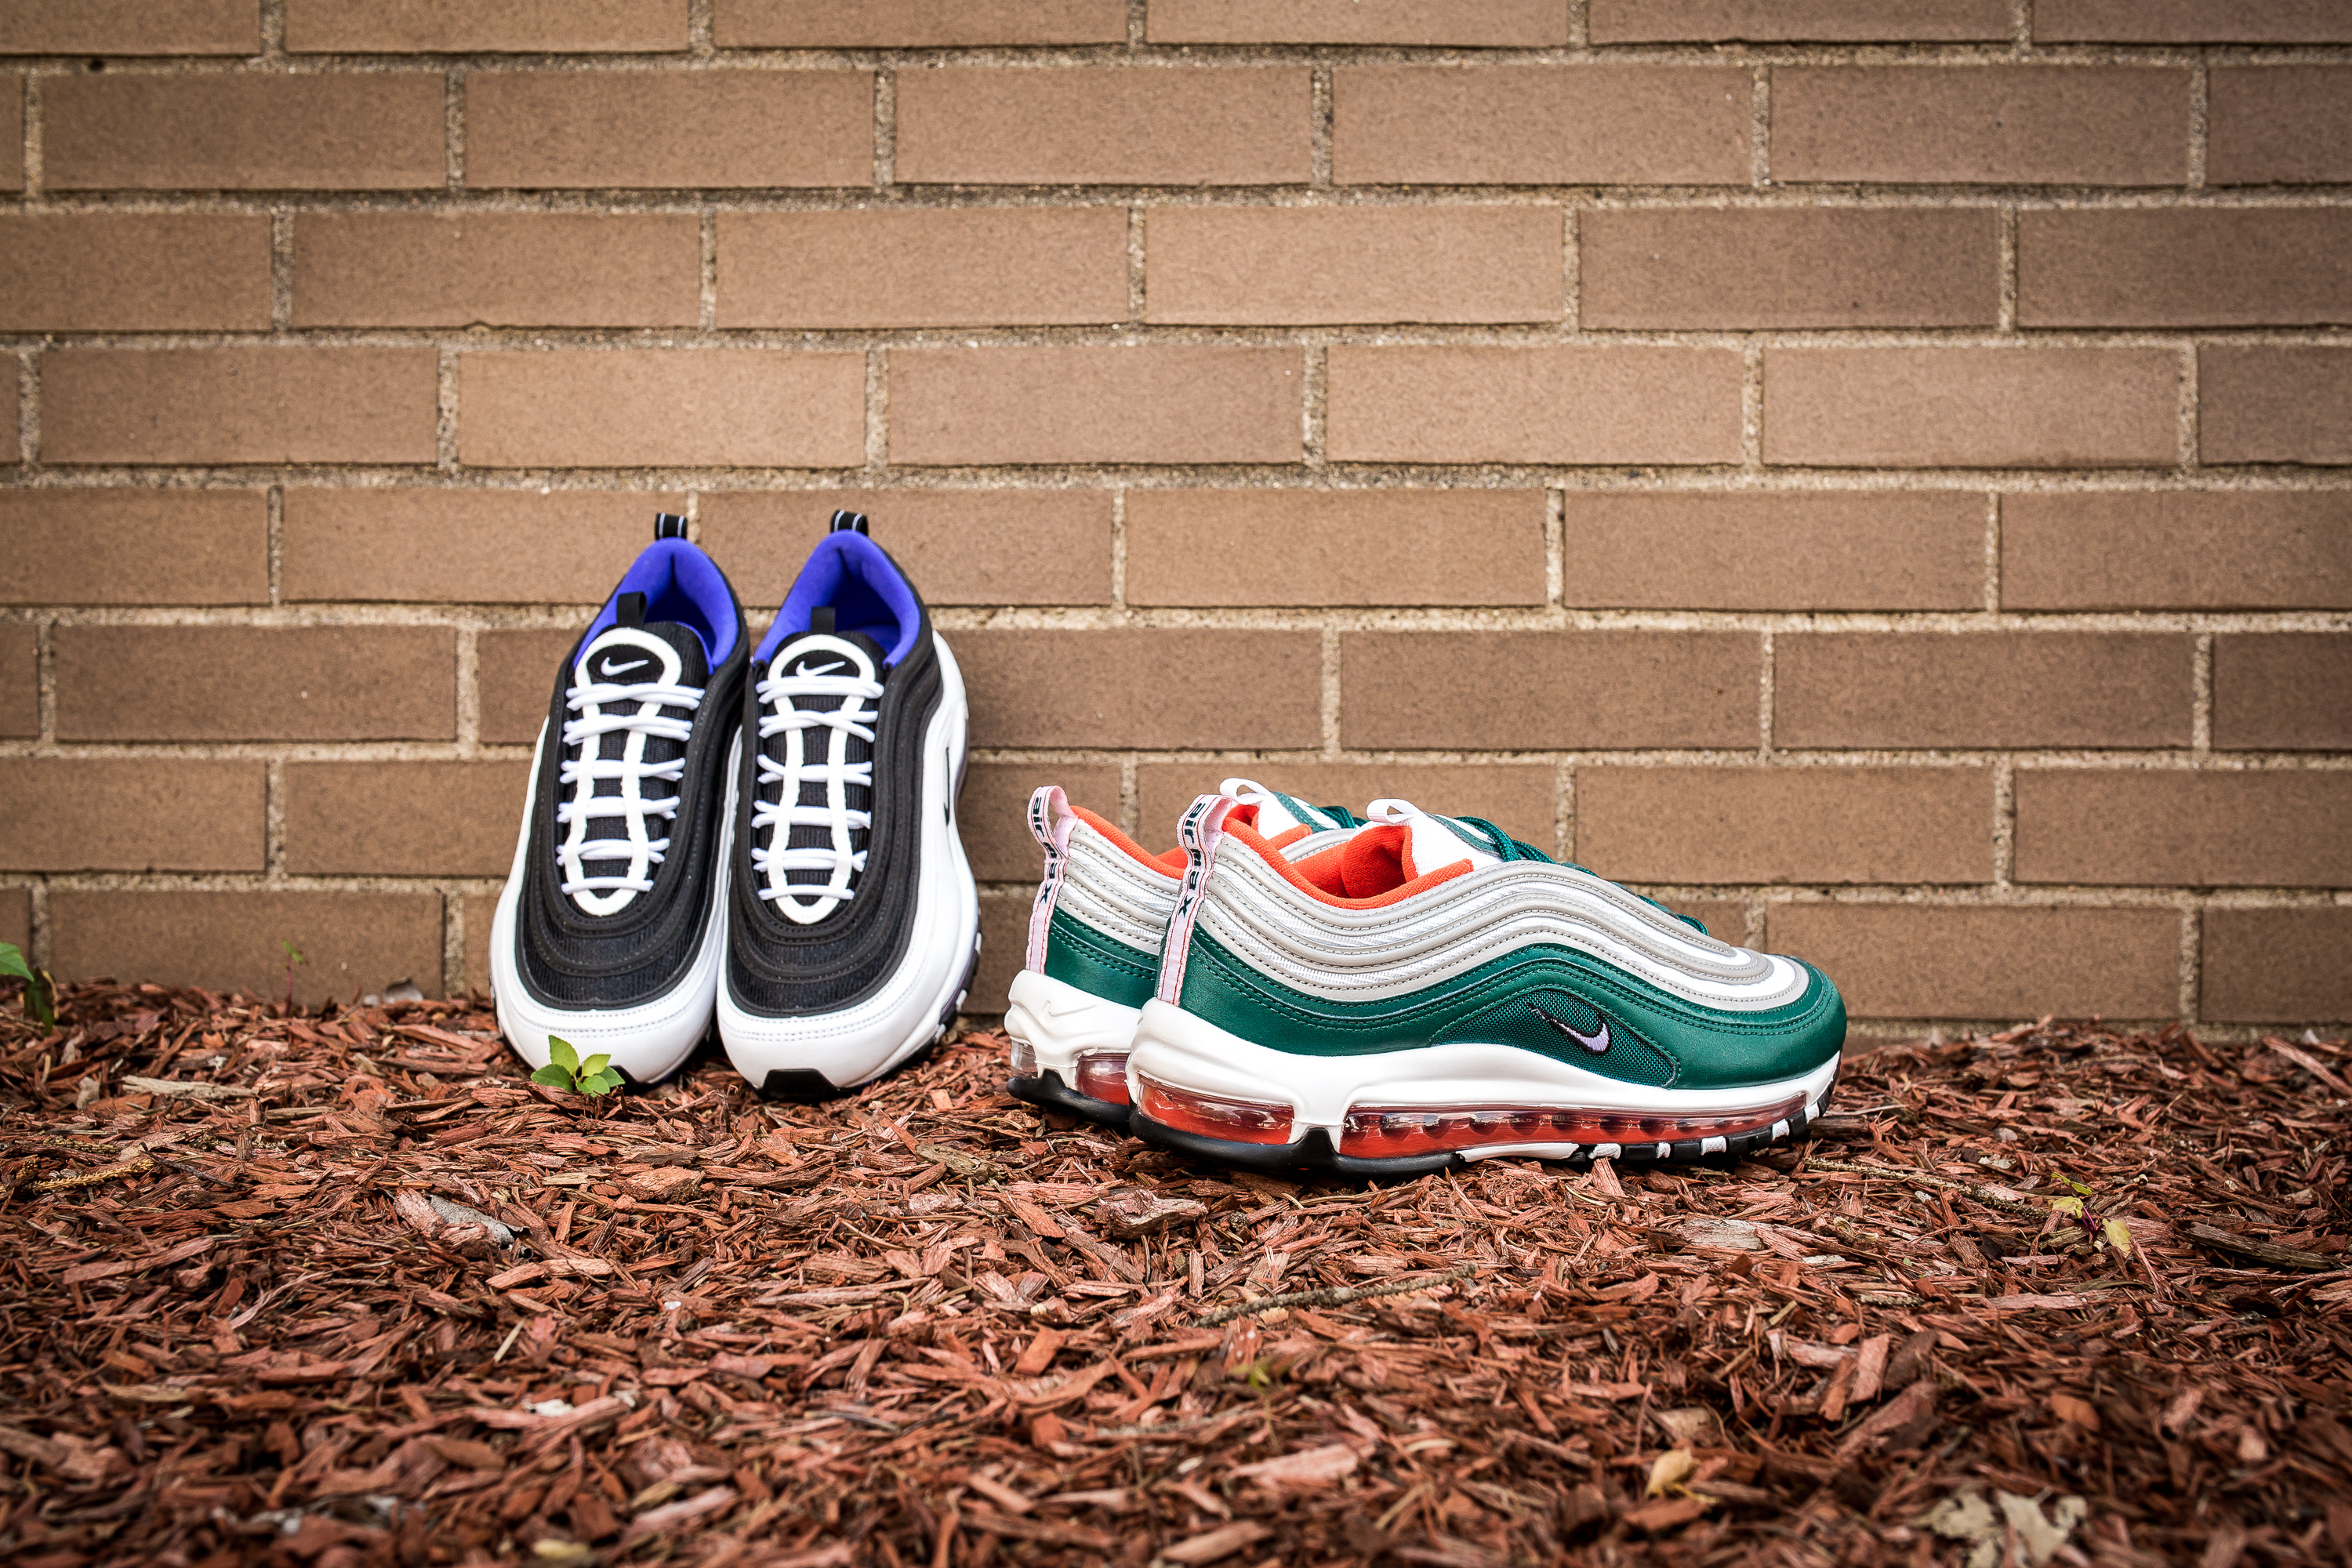 new arrival 1a2f1 968f7 australia nike air max 97 green orange b3196 b40c3